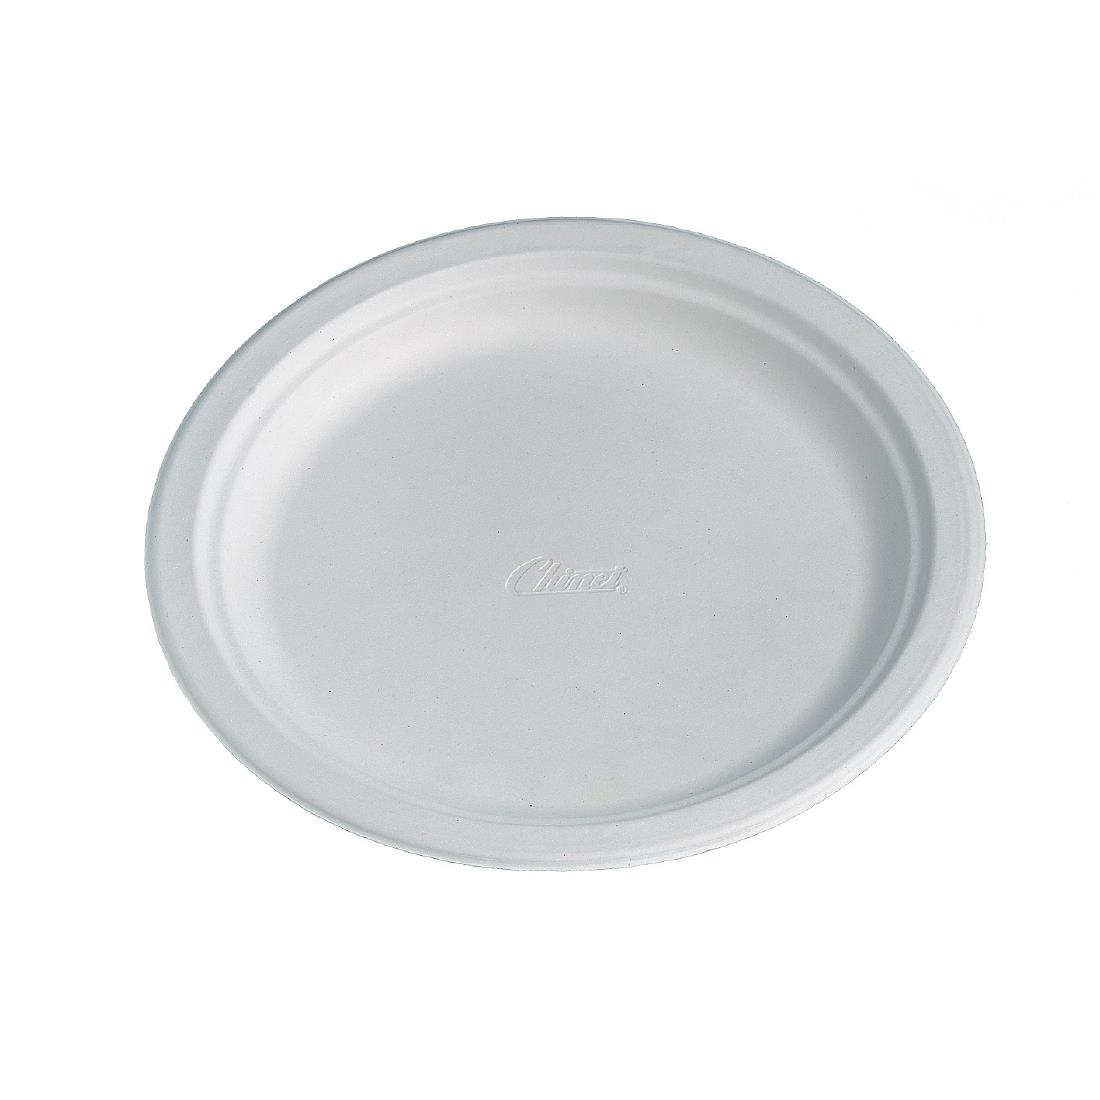 Image of Huhtamaki Compostable Moulded Fibre Chinet Plates 240mm (Pack of 100) Pack of 100